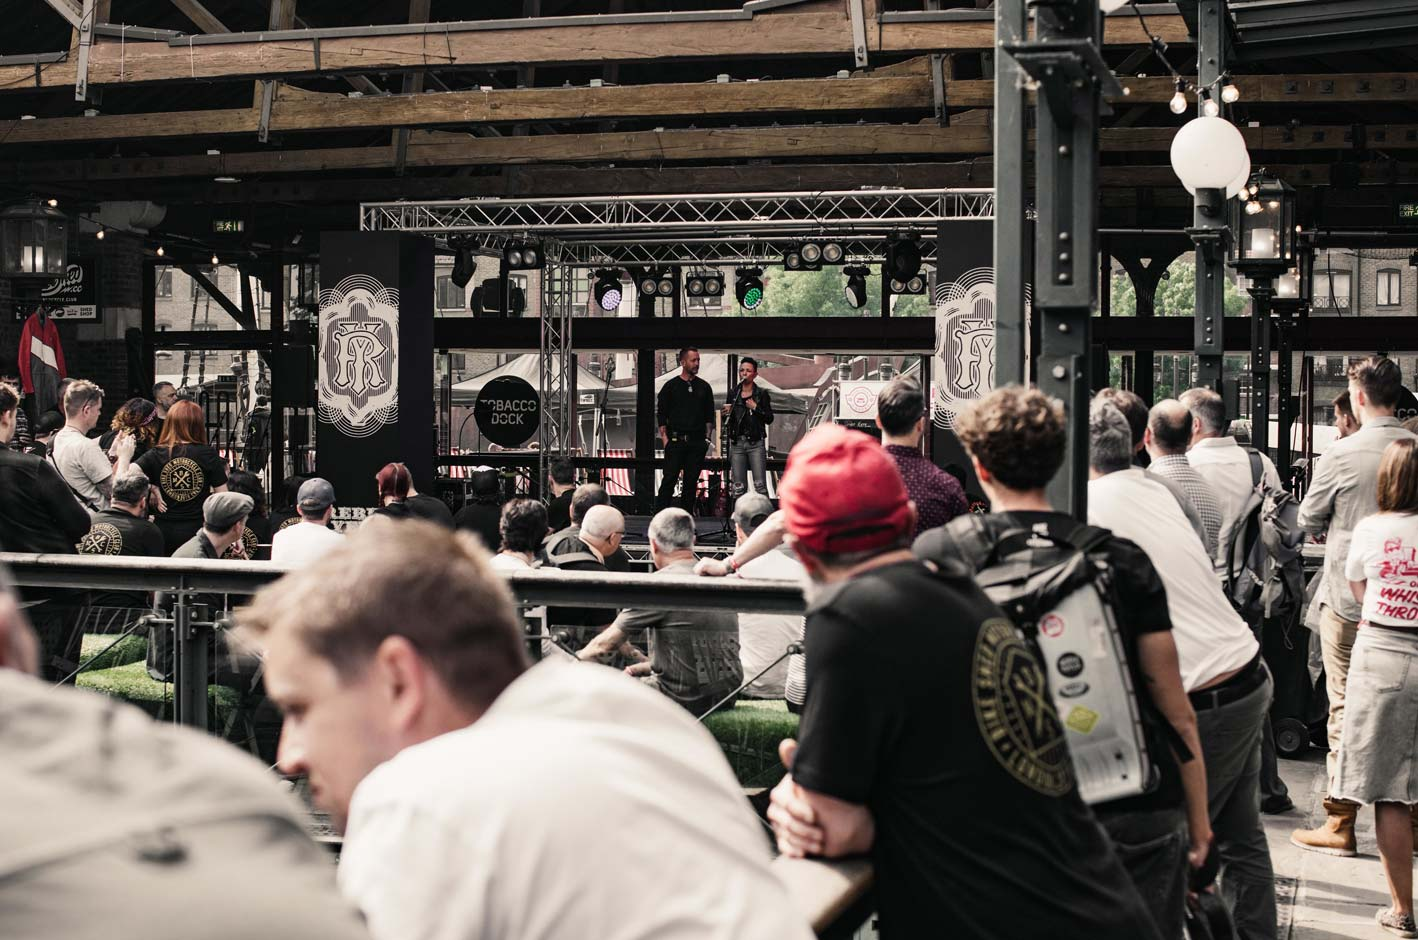 Provision & Co (P&Co) - The Bike Shed 2018